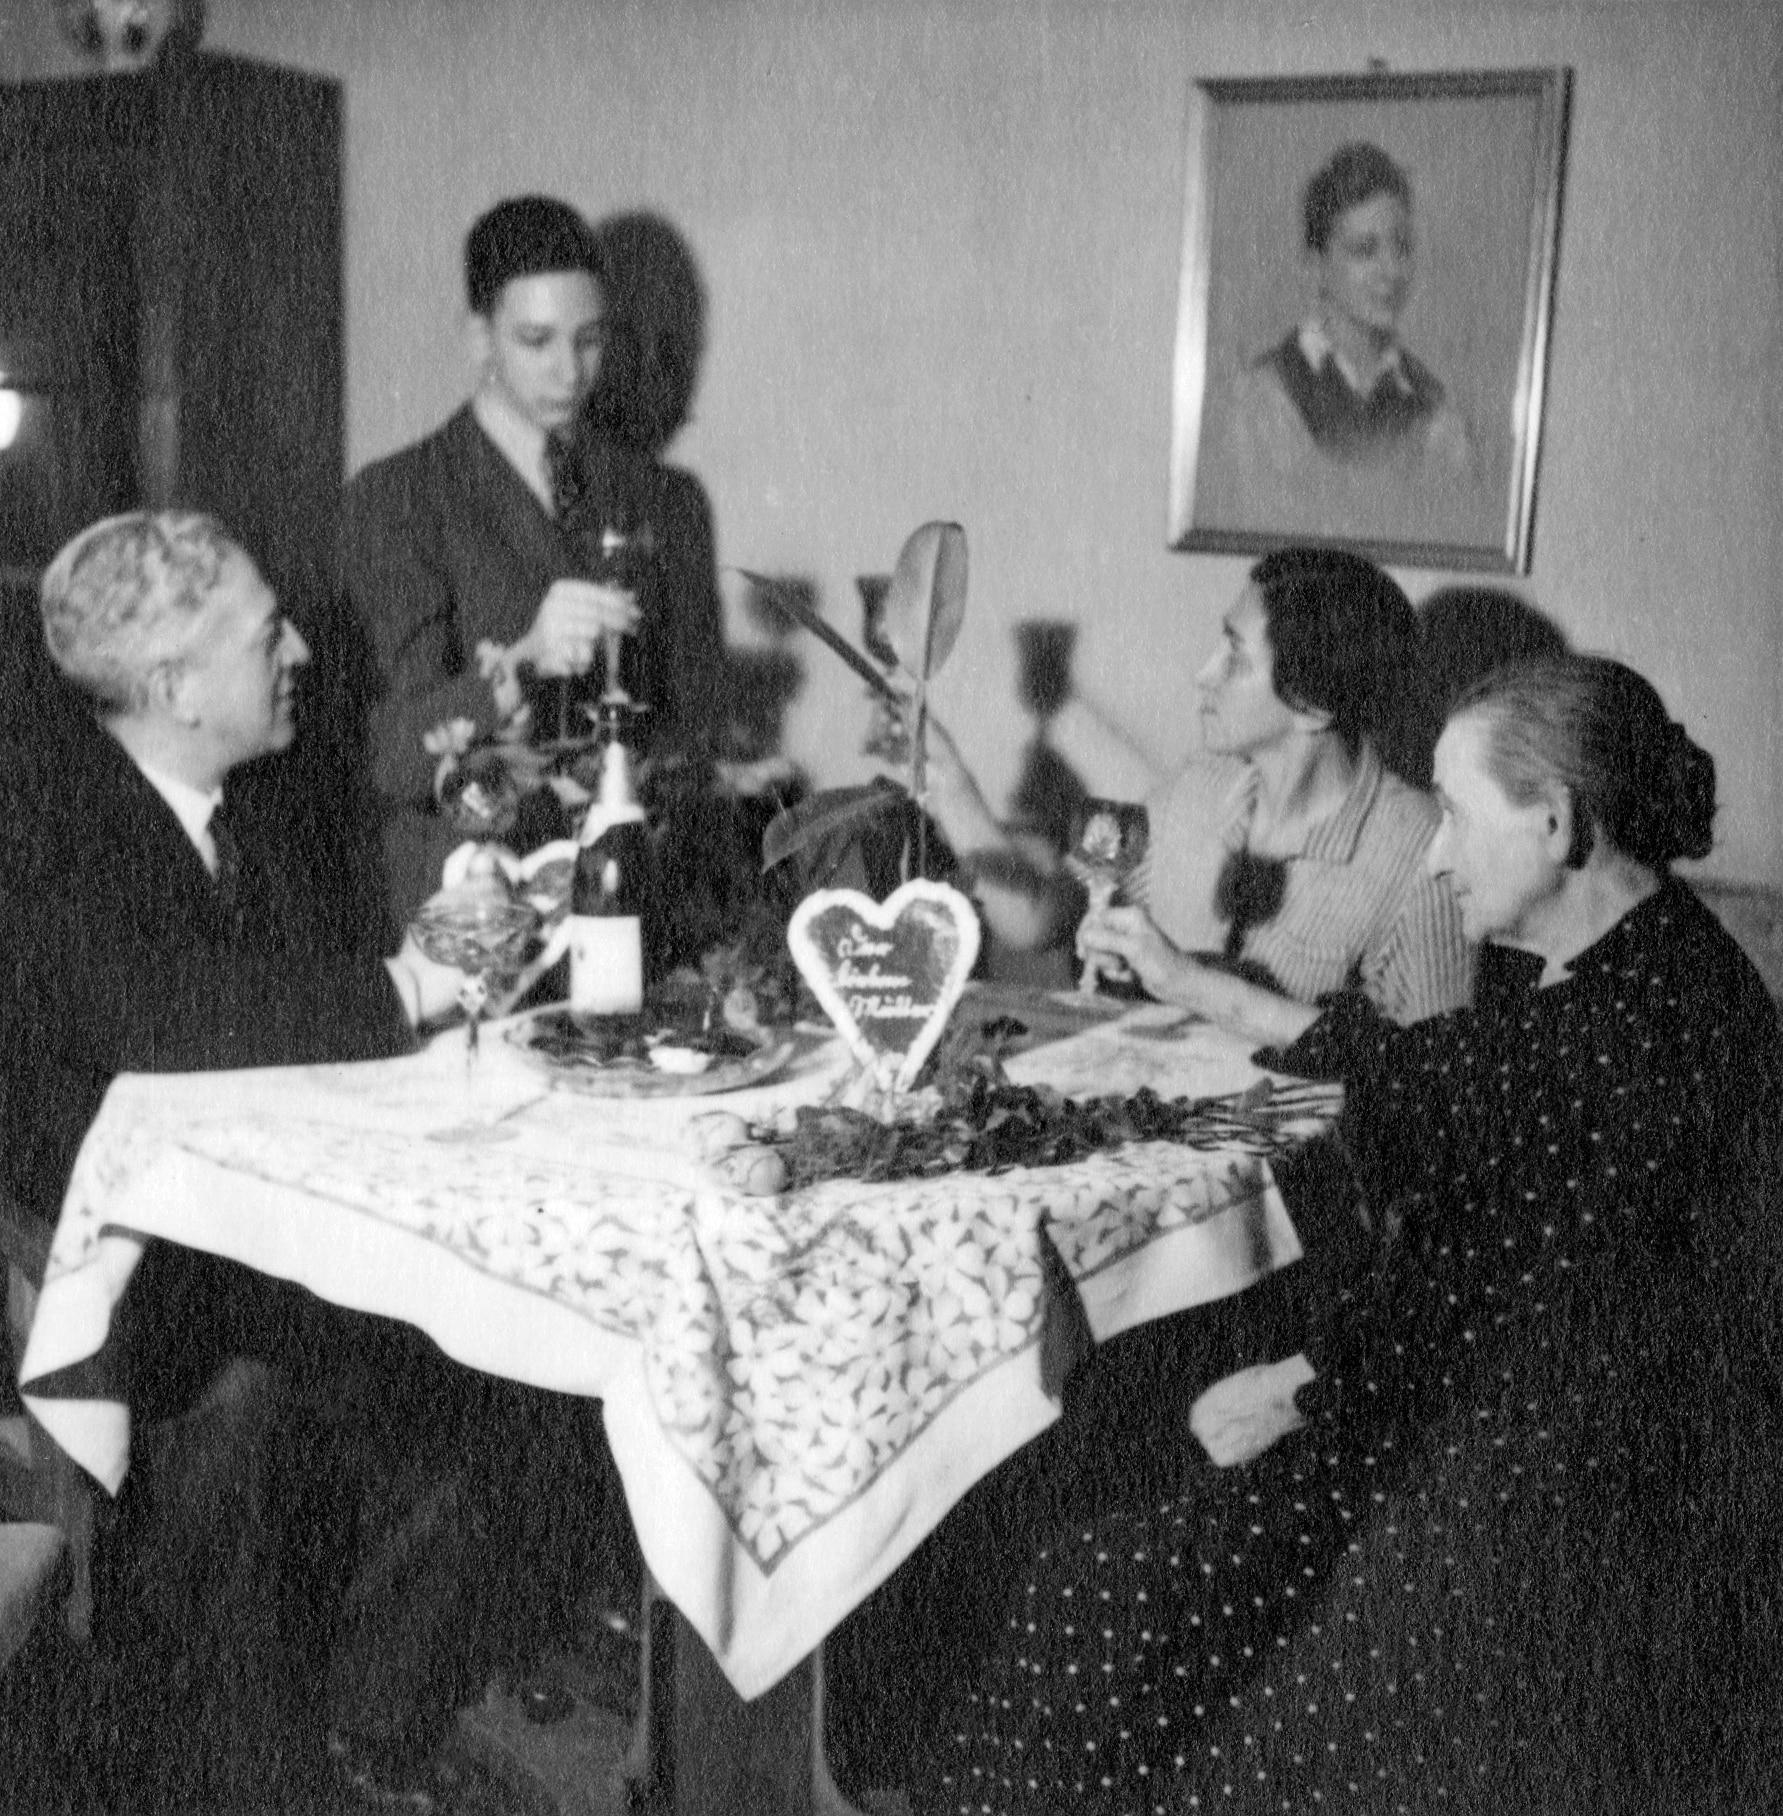 Bern Brent makes a toast in 1938.